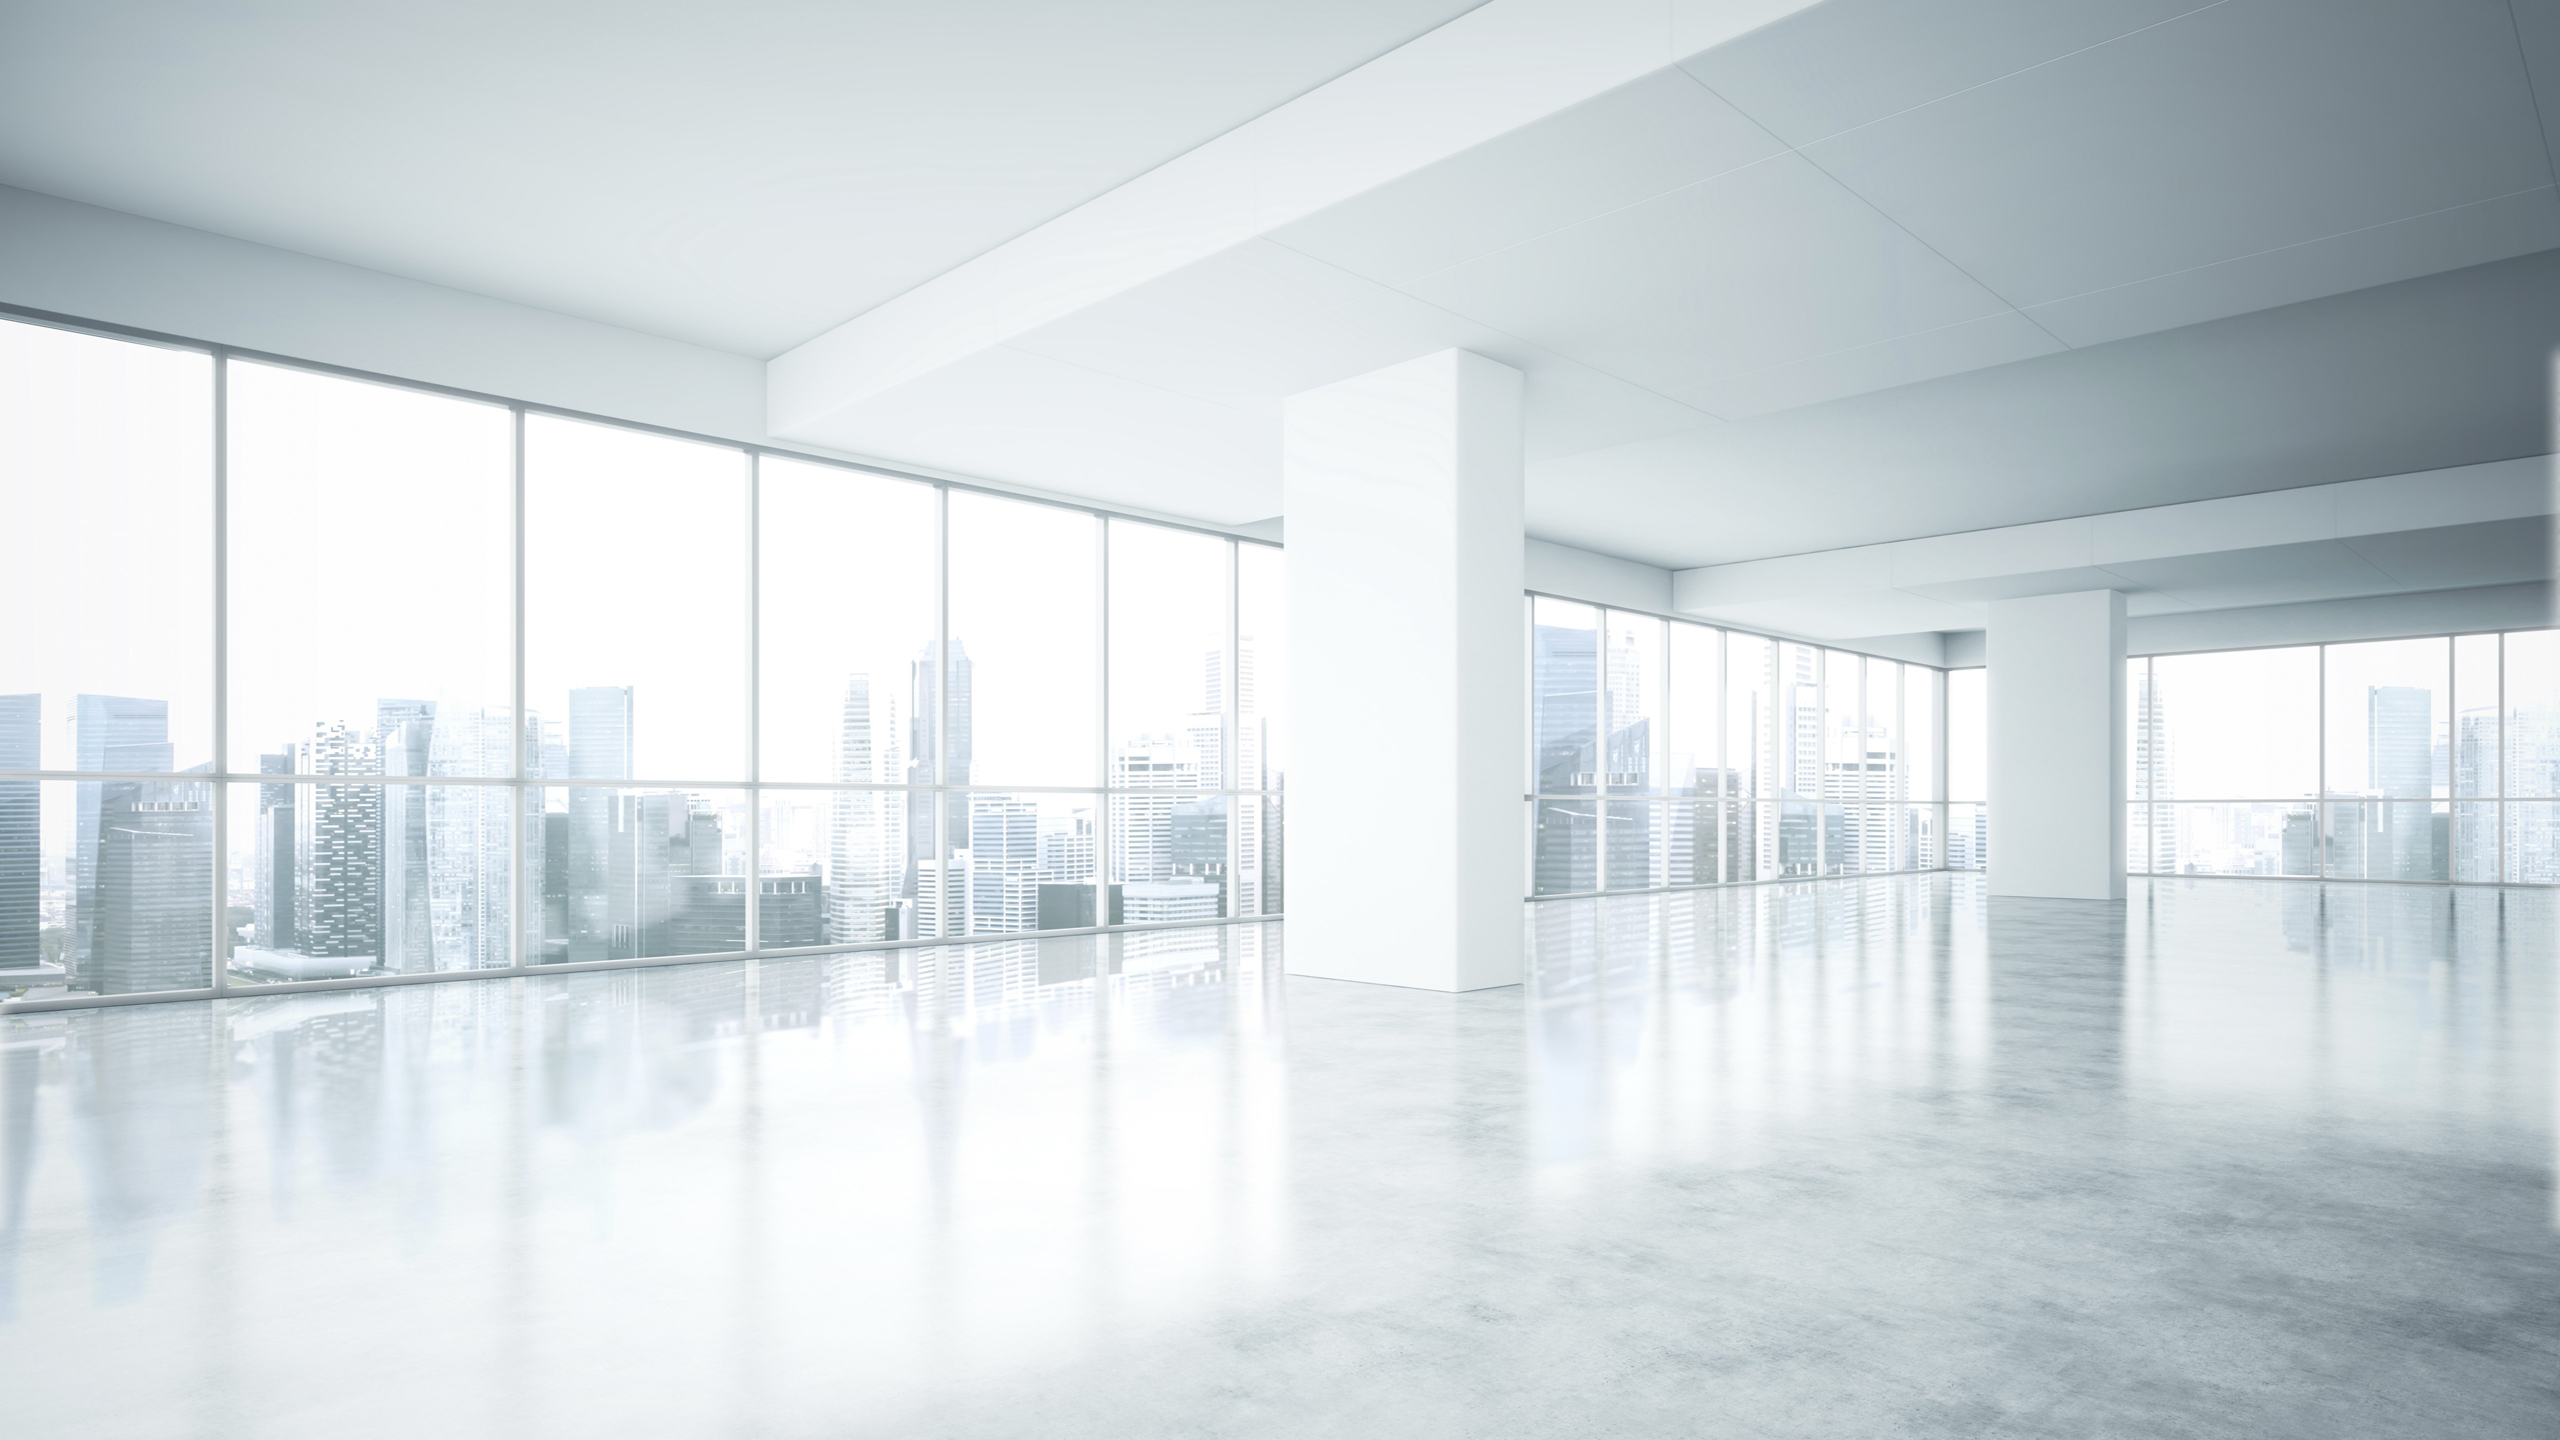 Empty Office Building Interior Images